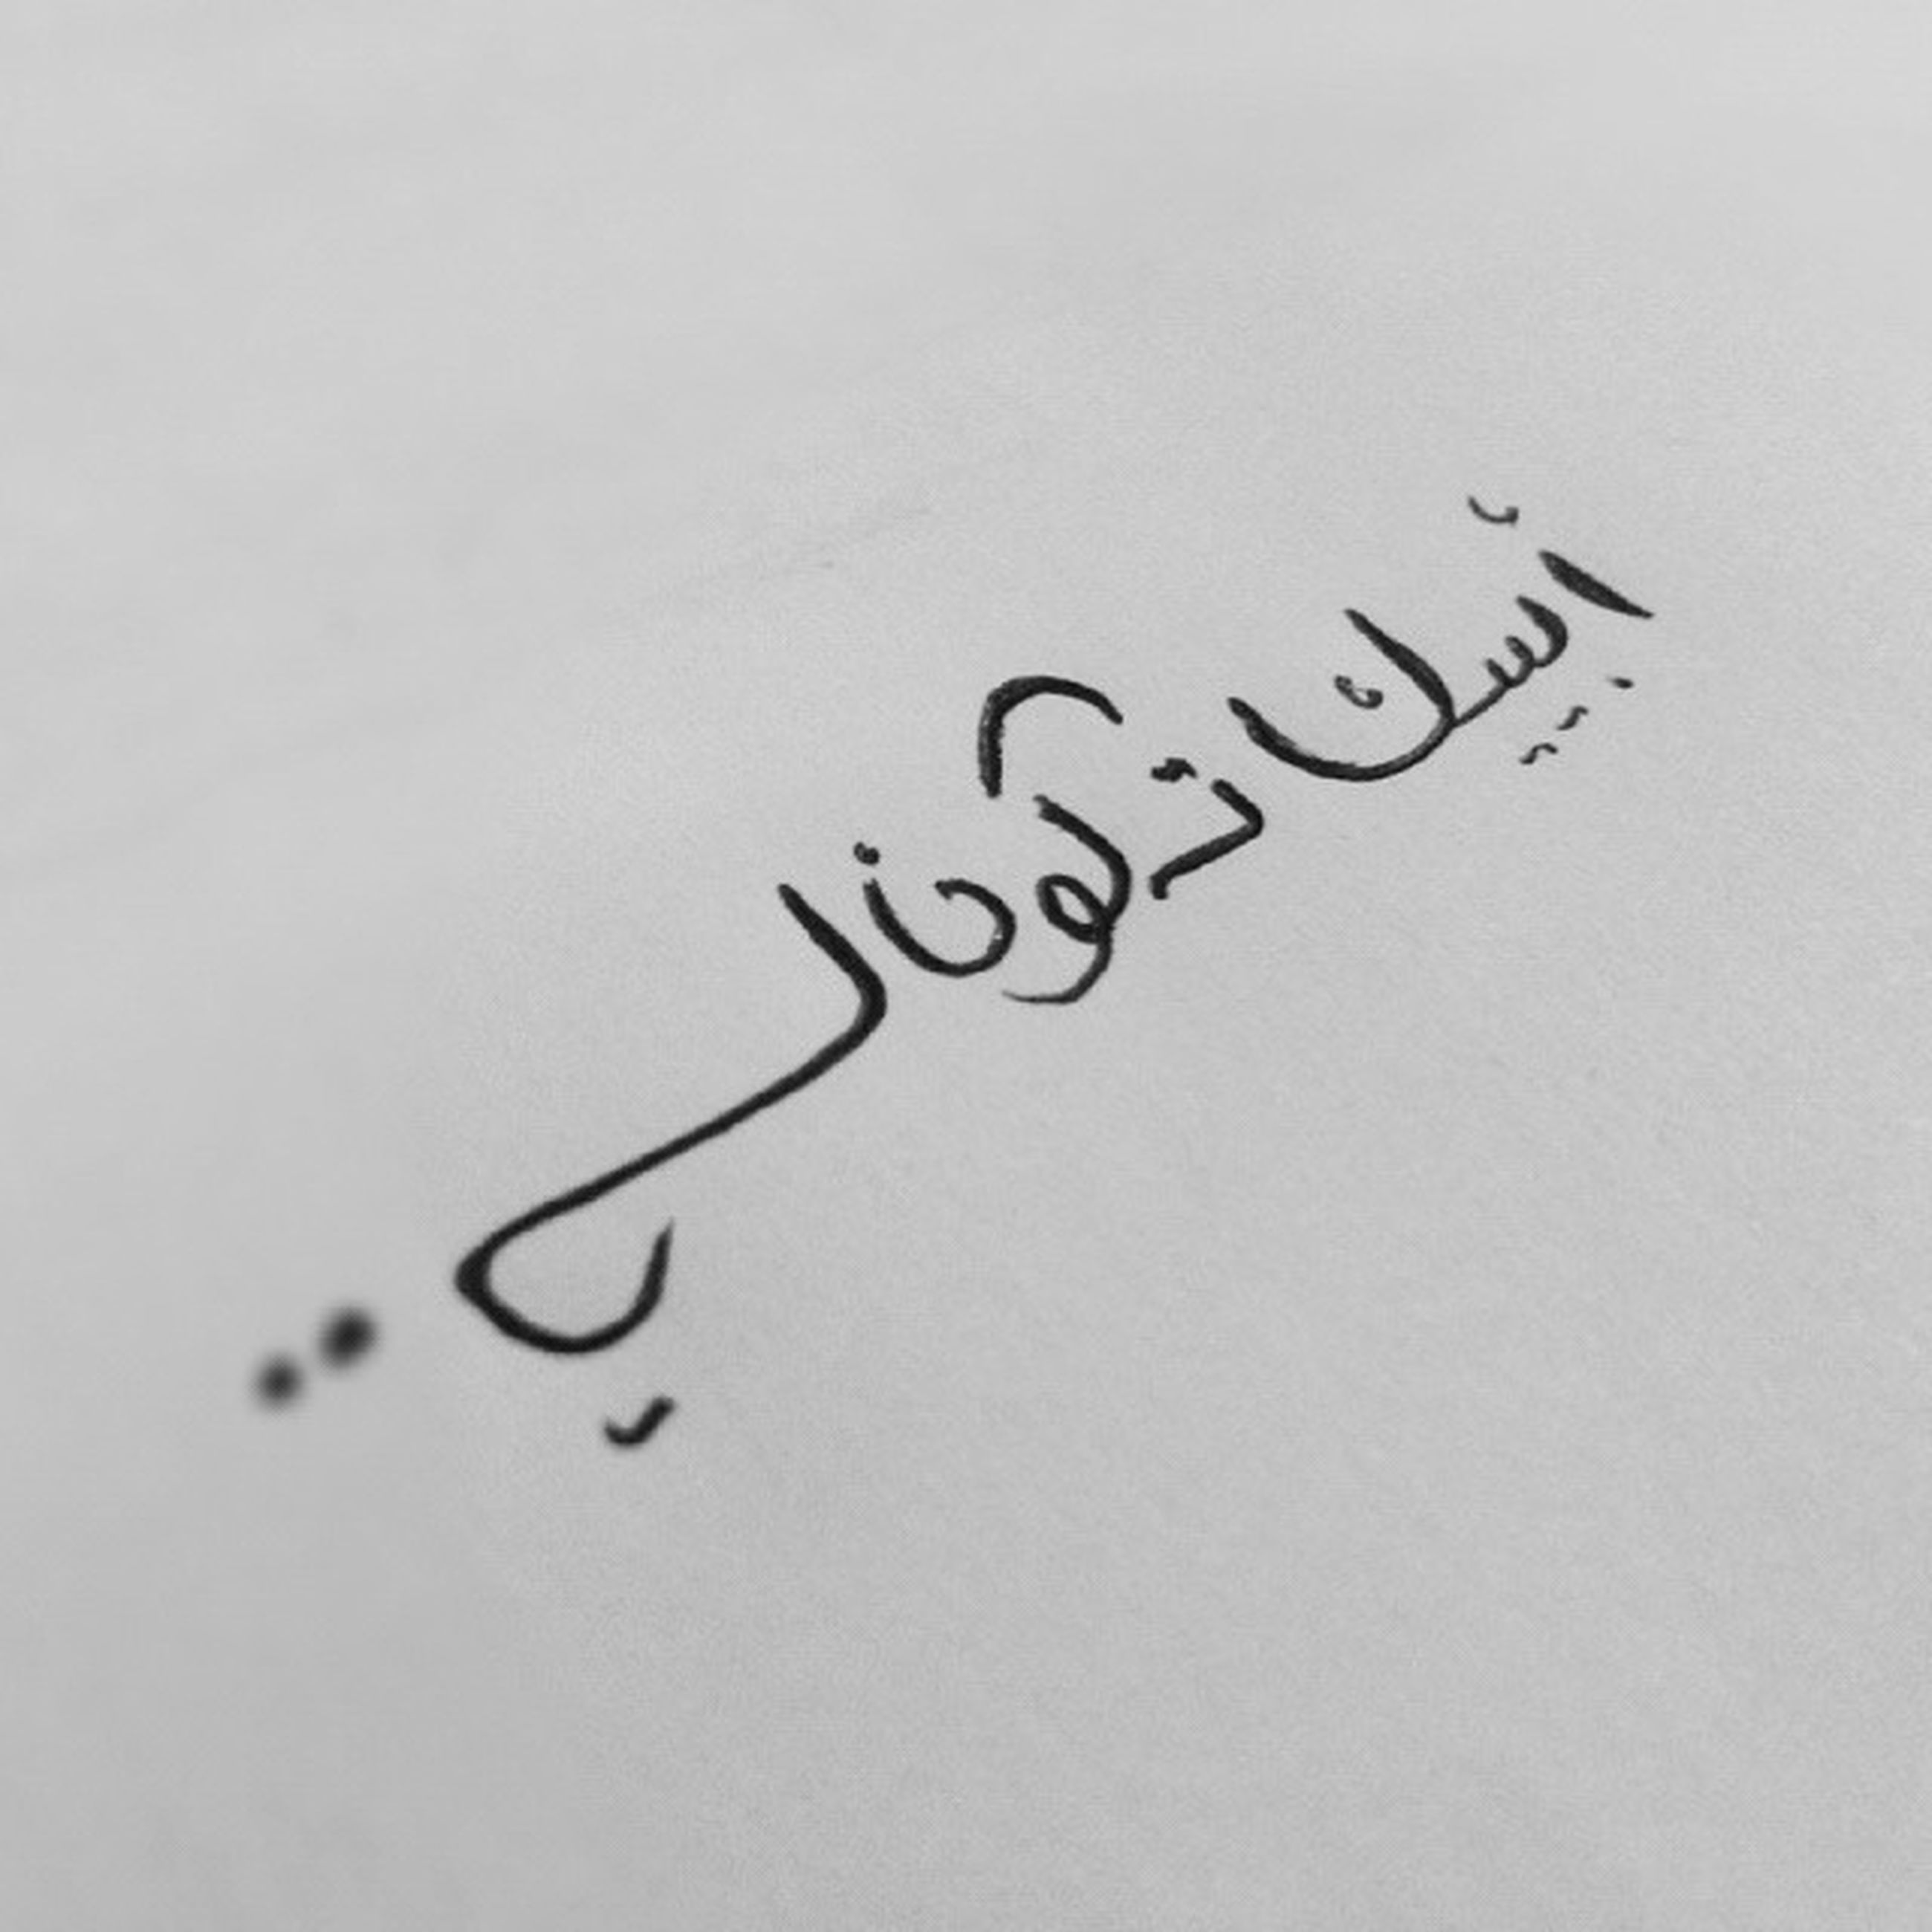 text, western script, communication, capital letter, close-up, sign, message, information, number, copy space, high angle view, handwriting, paper, white color, information sign, no people, non-western script, guidance, indoors, arrow symbol